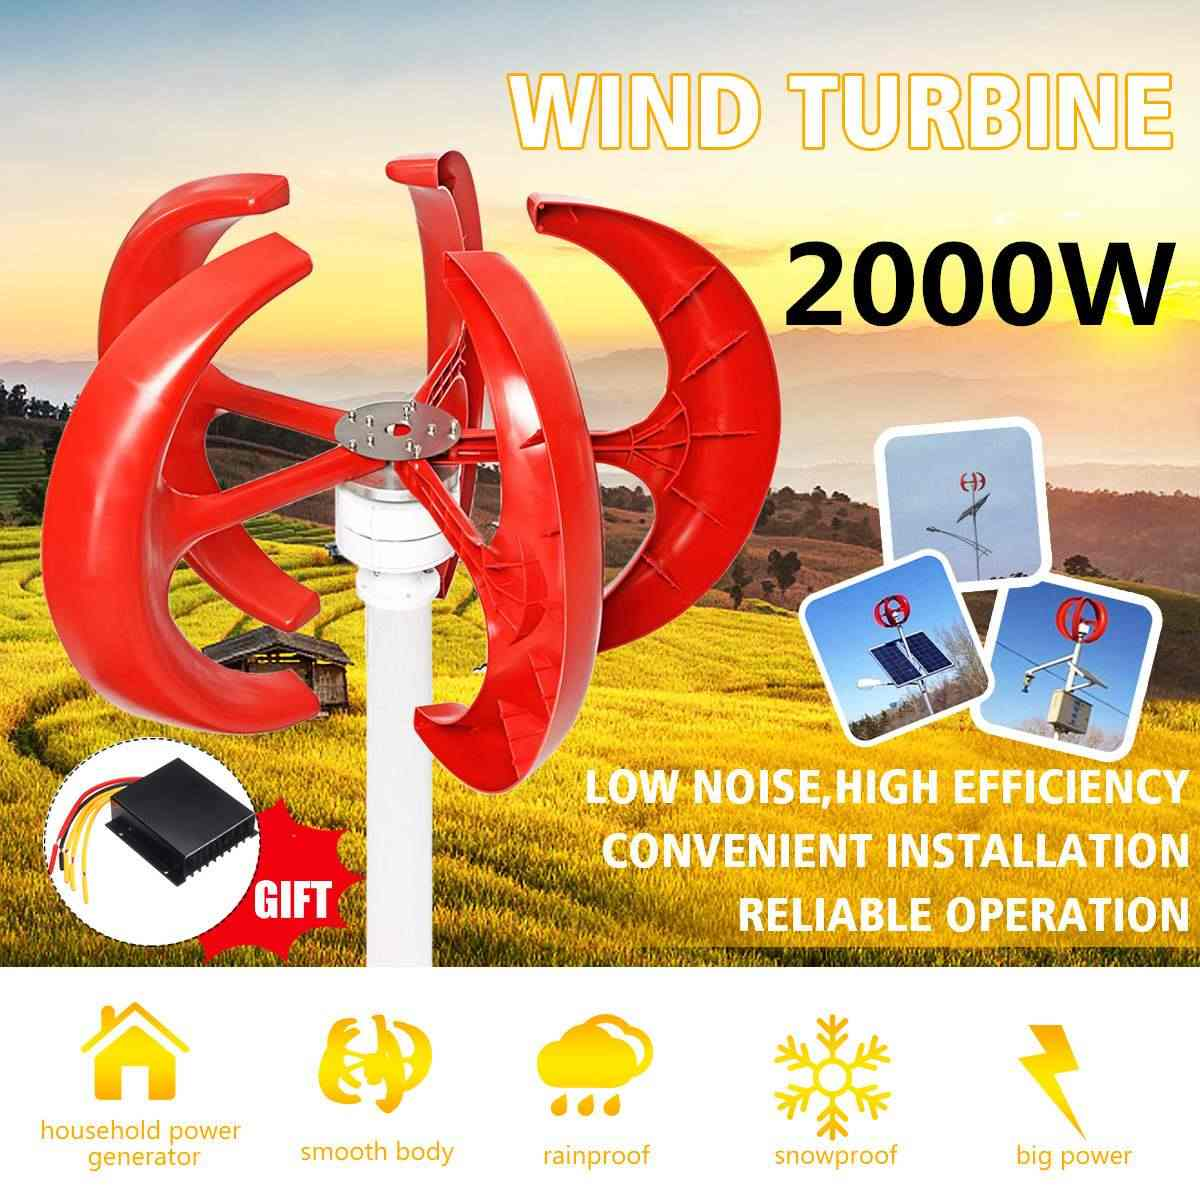 2000W AC 12V 24V Wind Turbines Generator Lantern Vertical Axi 5 Blades Motor Kit For Home Hybrids Streetlight Electromagnetic